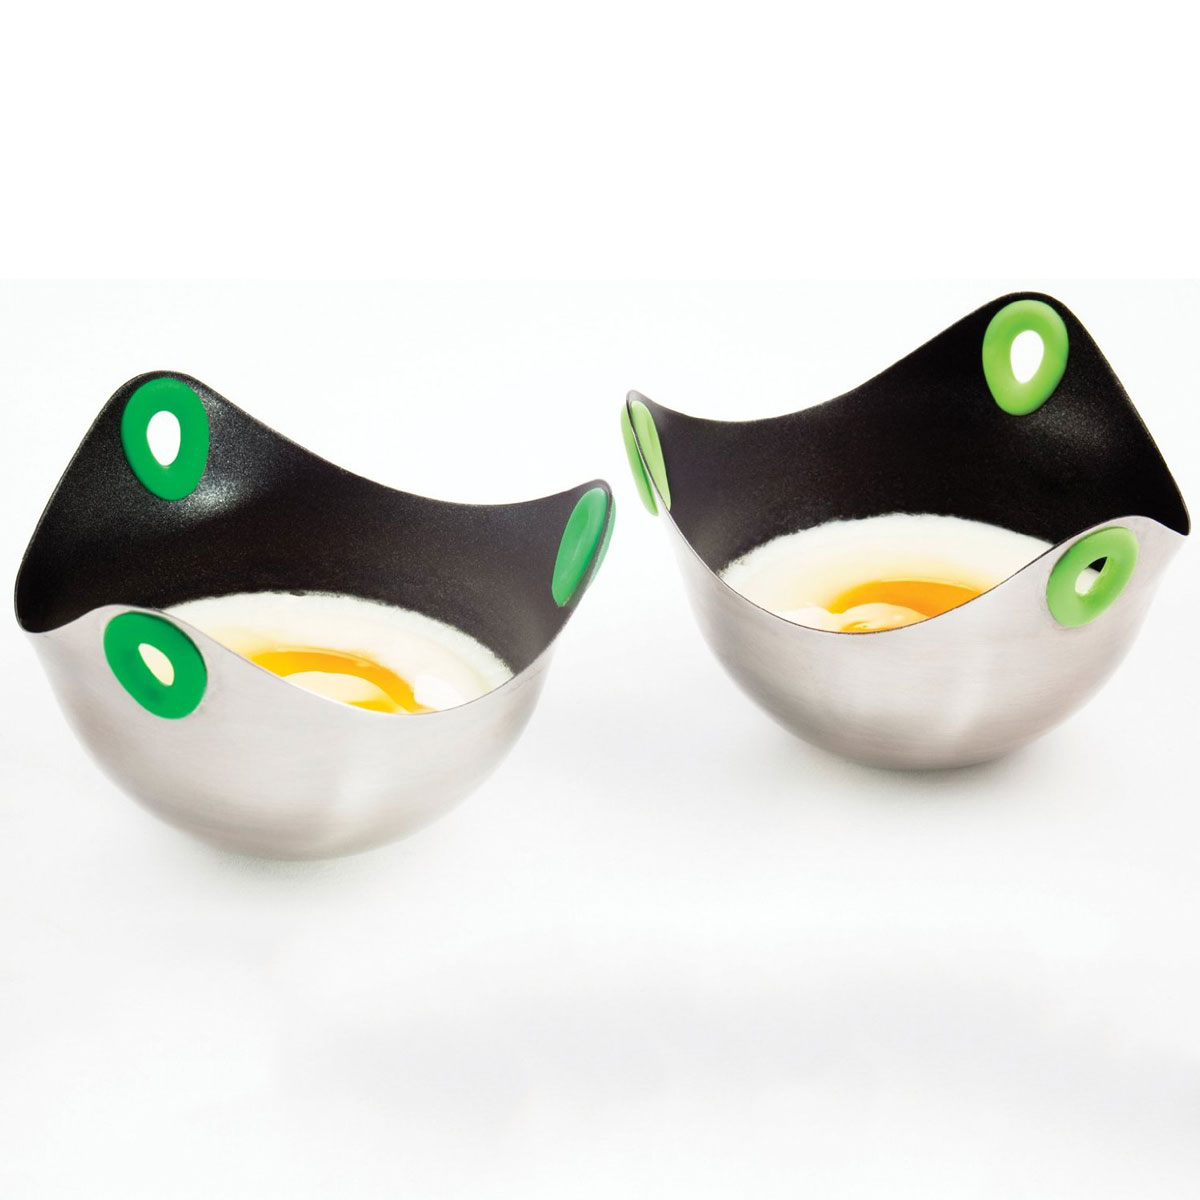 Poachpod Stainless Floating Egg Poachers The Green Head